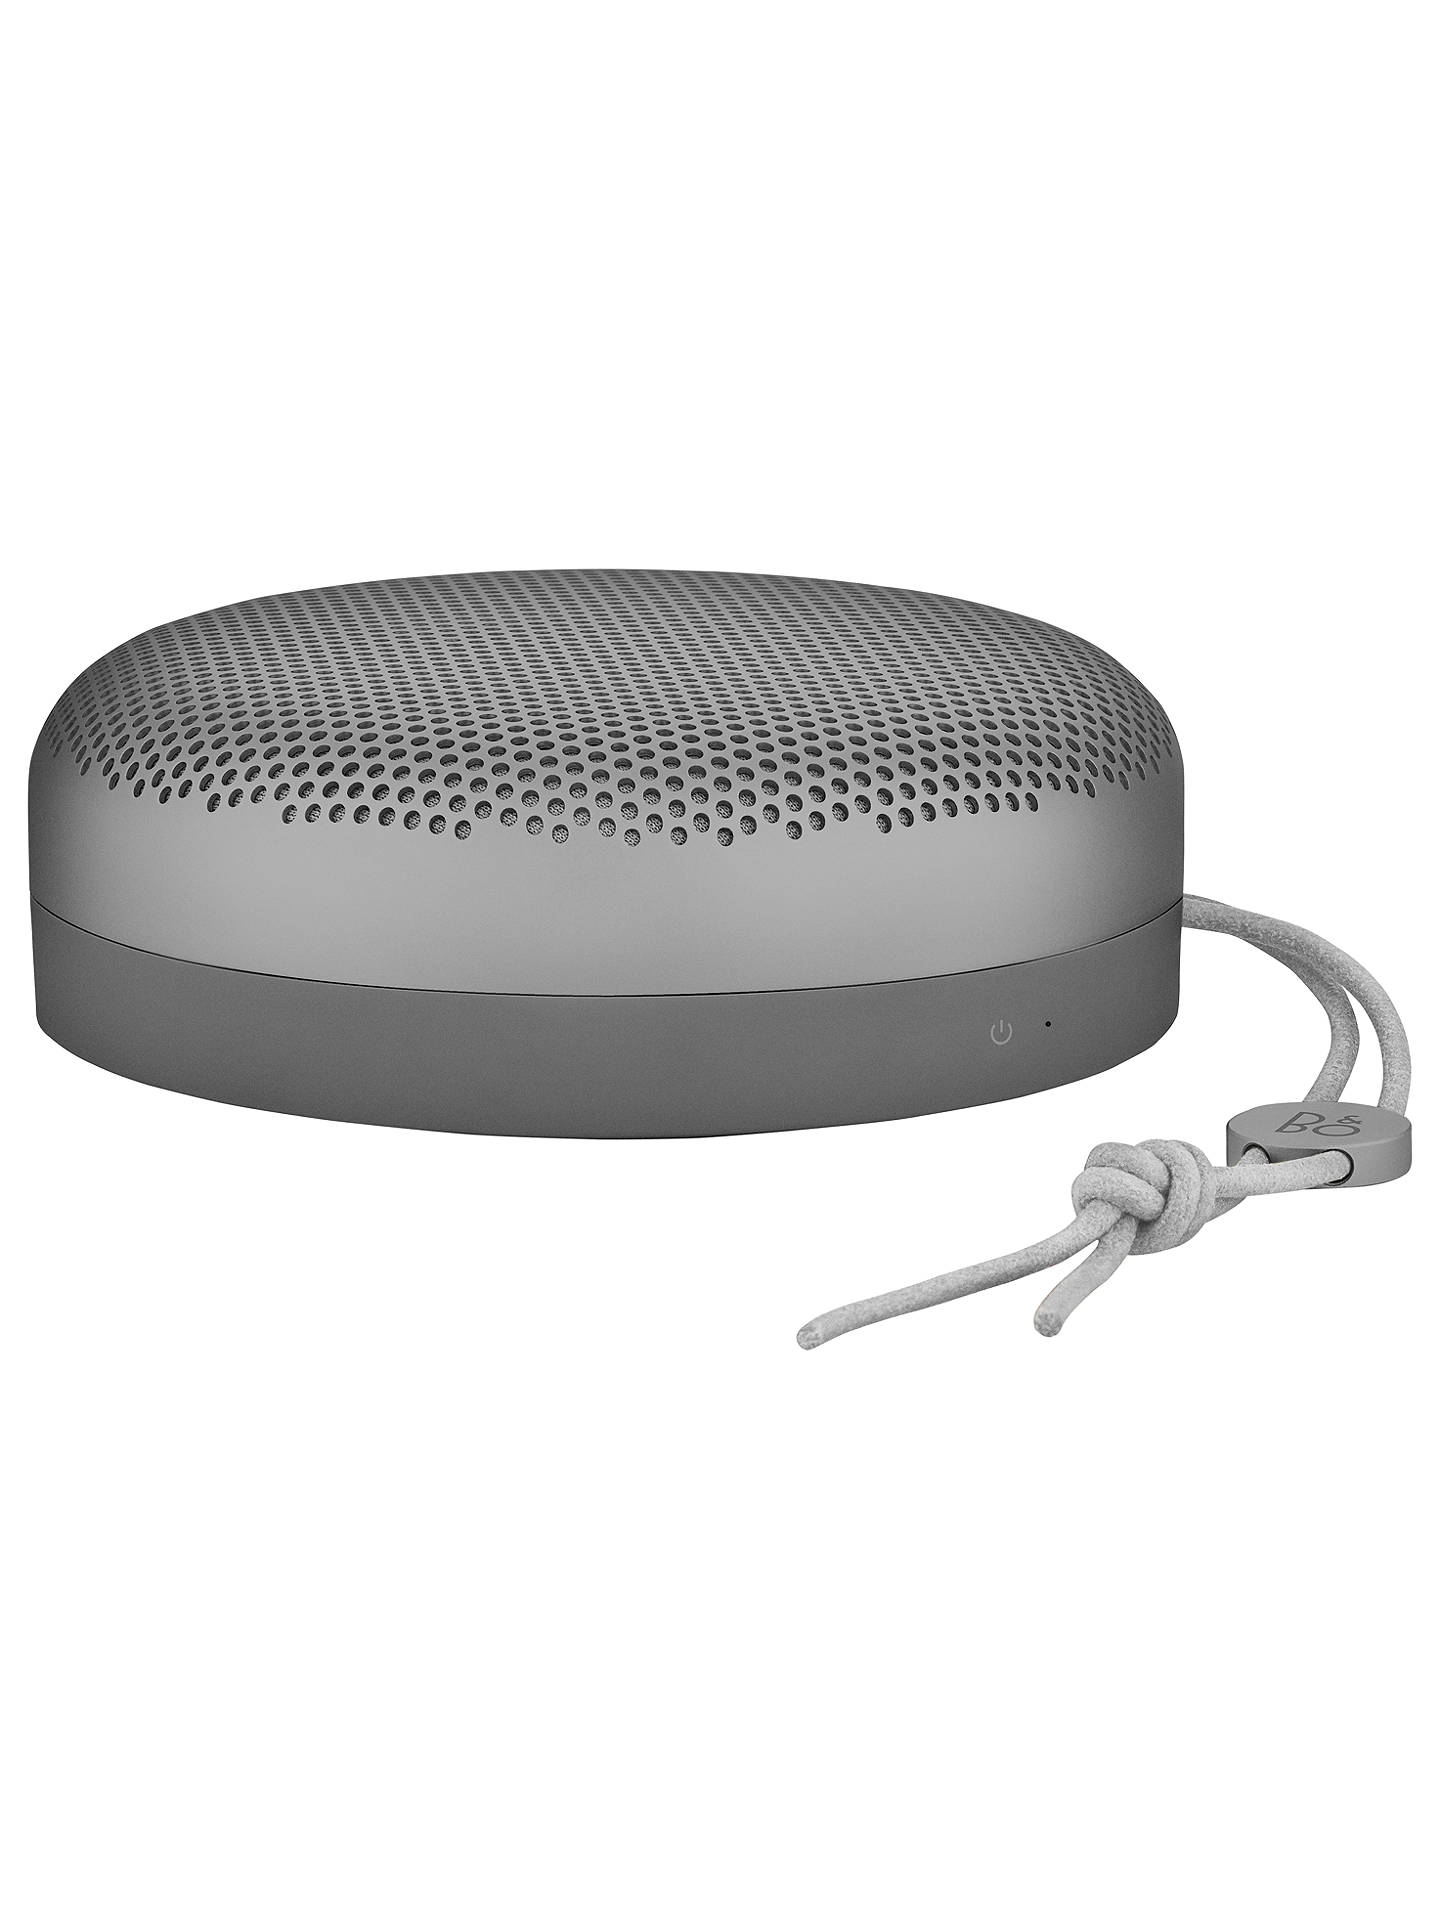 Buy Bang & Olufsen Beoplay A1 Portable Bluetooth Speaker, Charcoal Sand Online at johnlewis.com